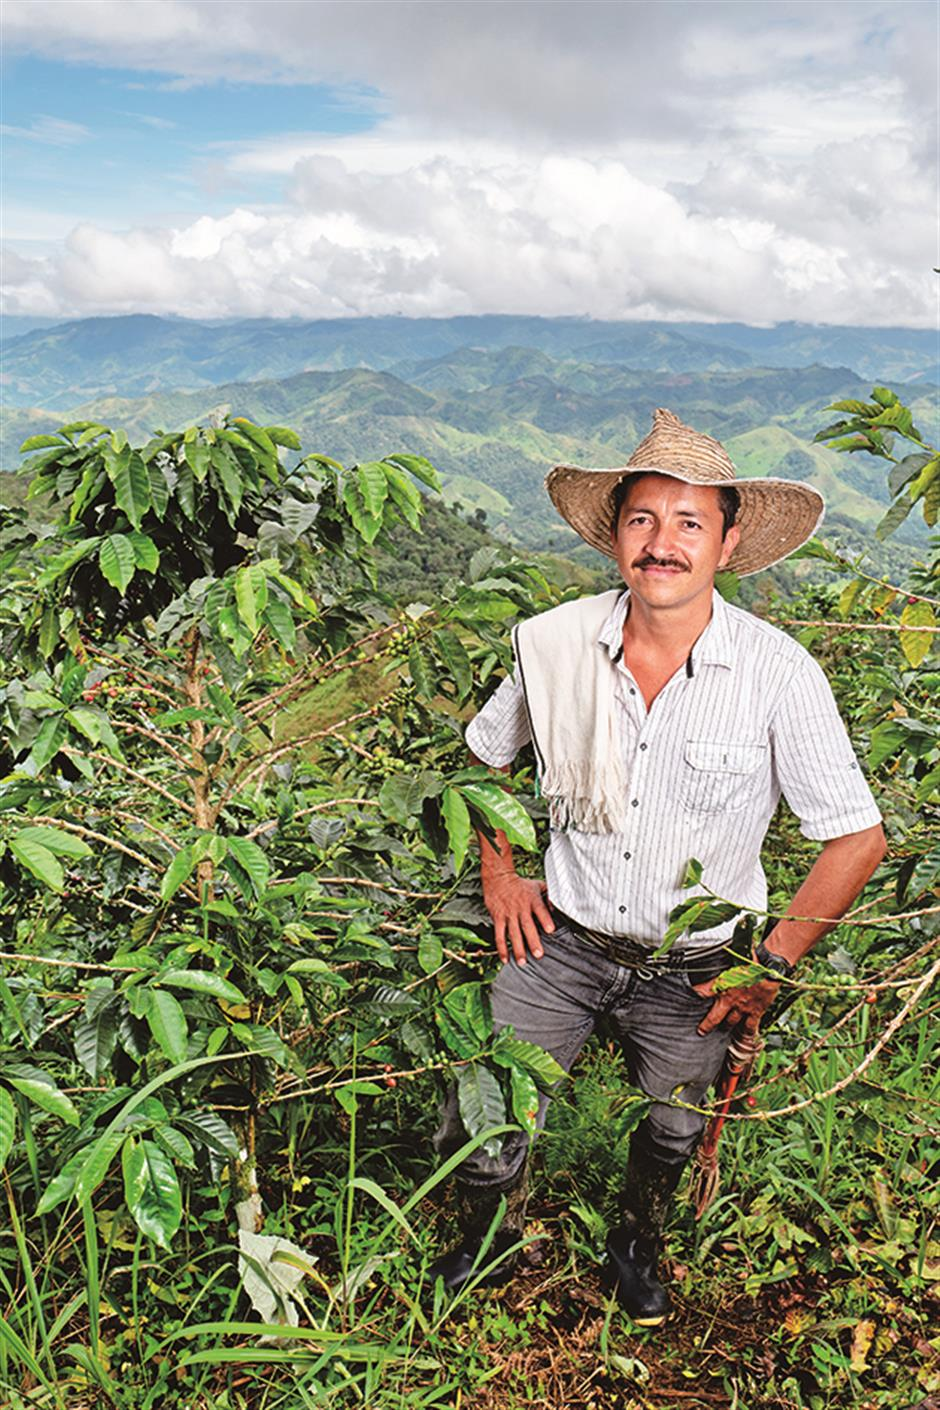 The coffee industry's sustainability drive